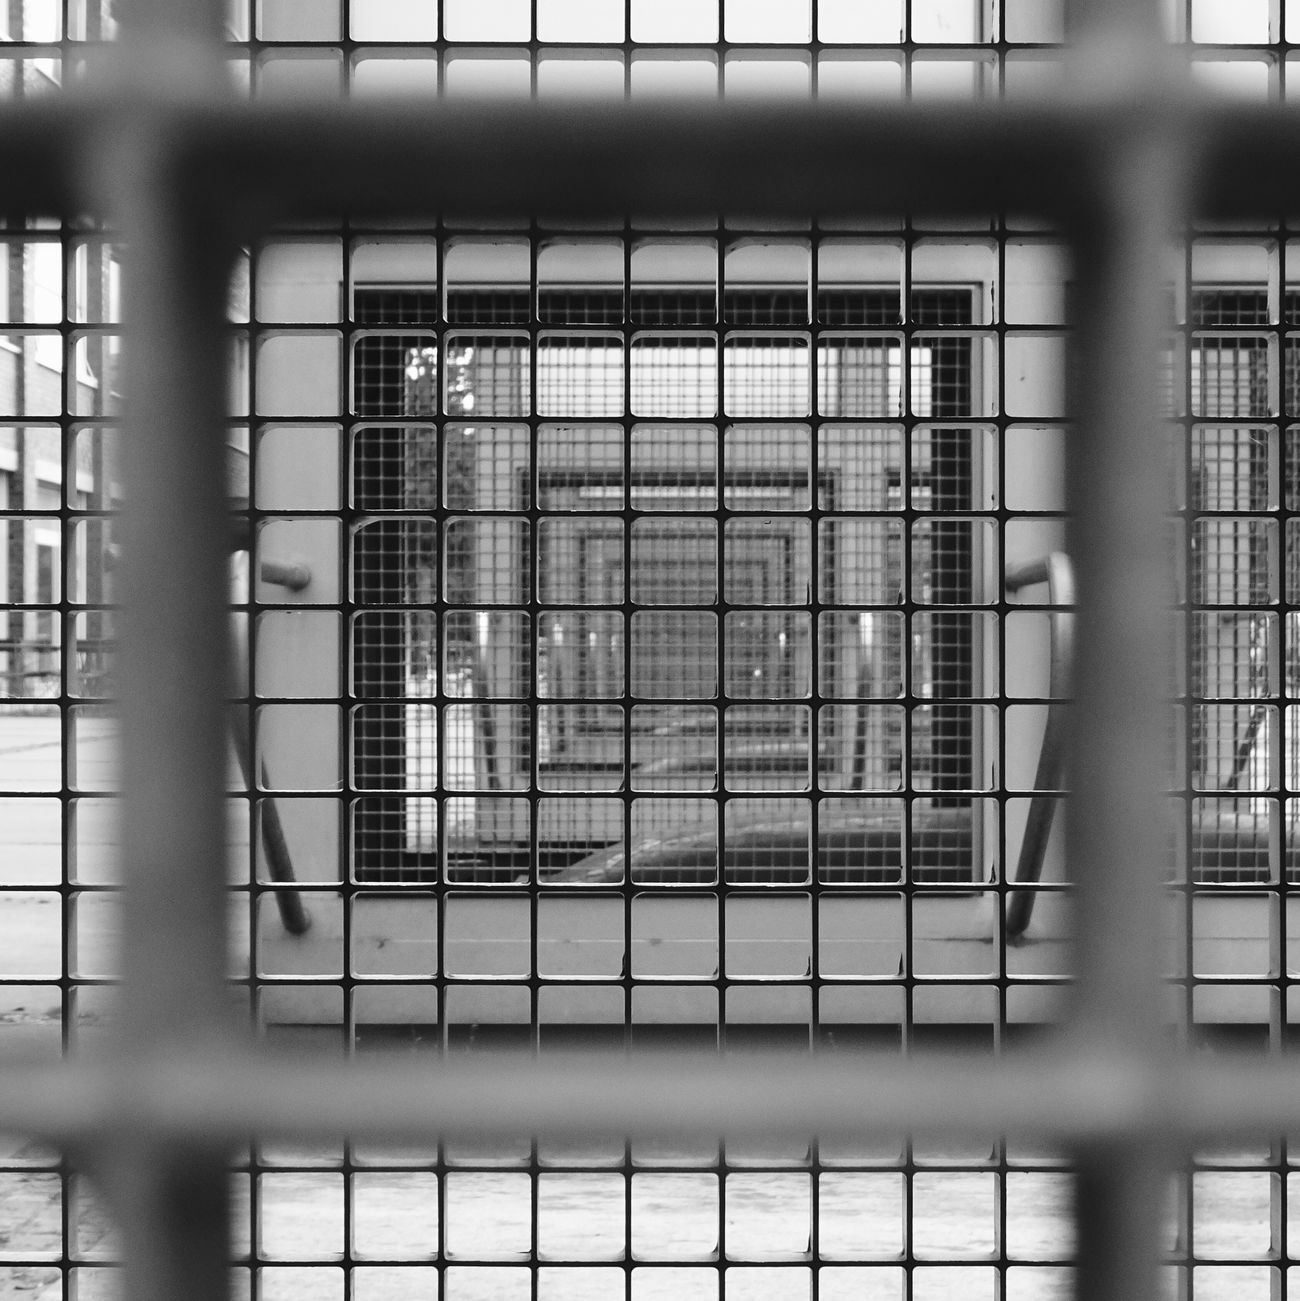 in the cage Architecture No People Built Structure Geometry Geometric Shape Black And White Blackandwhite Black And White Photography Blackandwhite Photography Light And Shadow